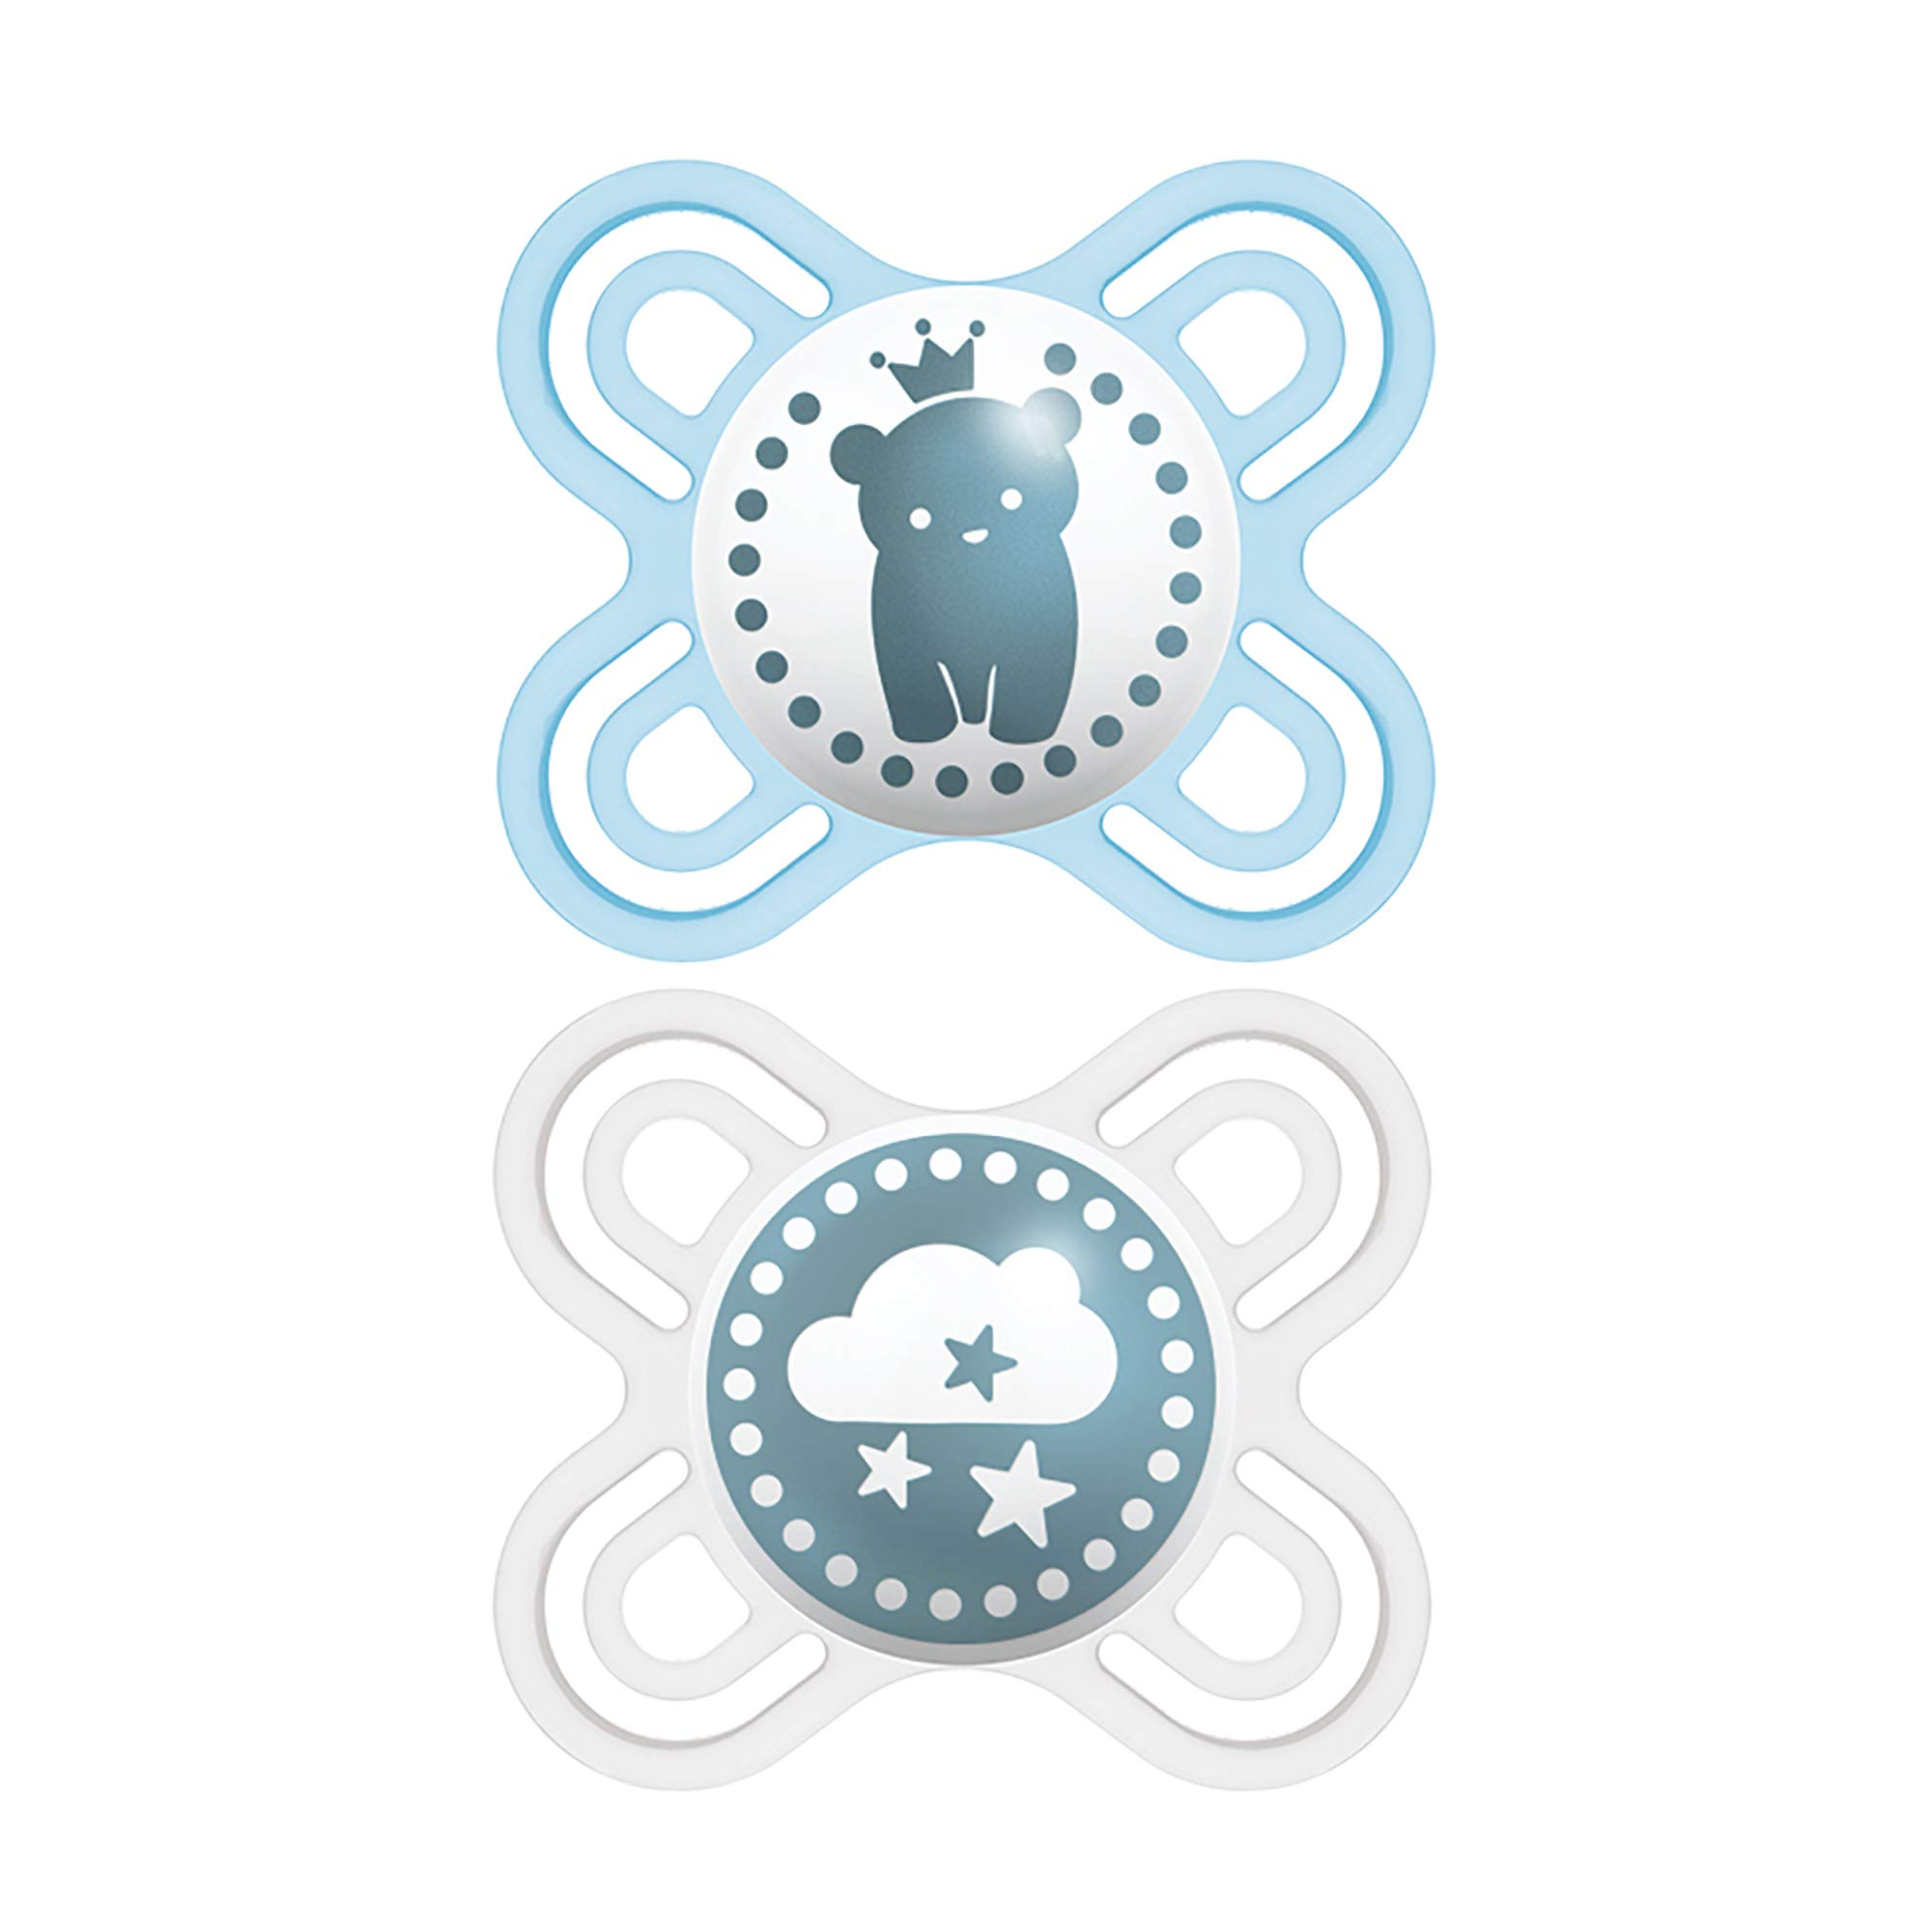 MAM Perfect Start Pacifiers, Orthodontic Pacifiers (2 pack, 1 Sterilizing Pacifier Case) MAM Newborn Pacifiers, Best Pacifier for Breastfed Babies, Baby Boy Pacifier, Designs May Vary